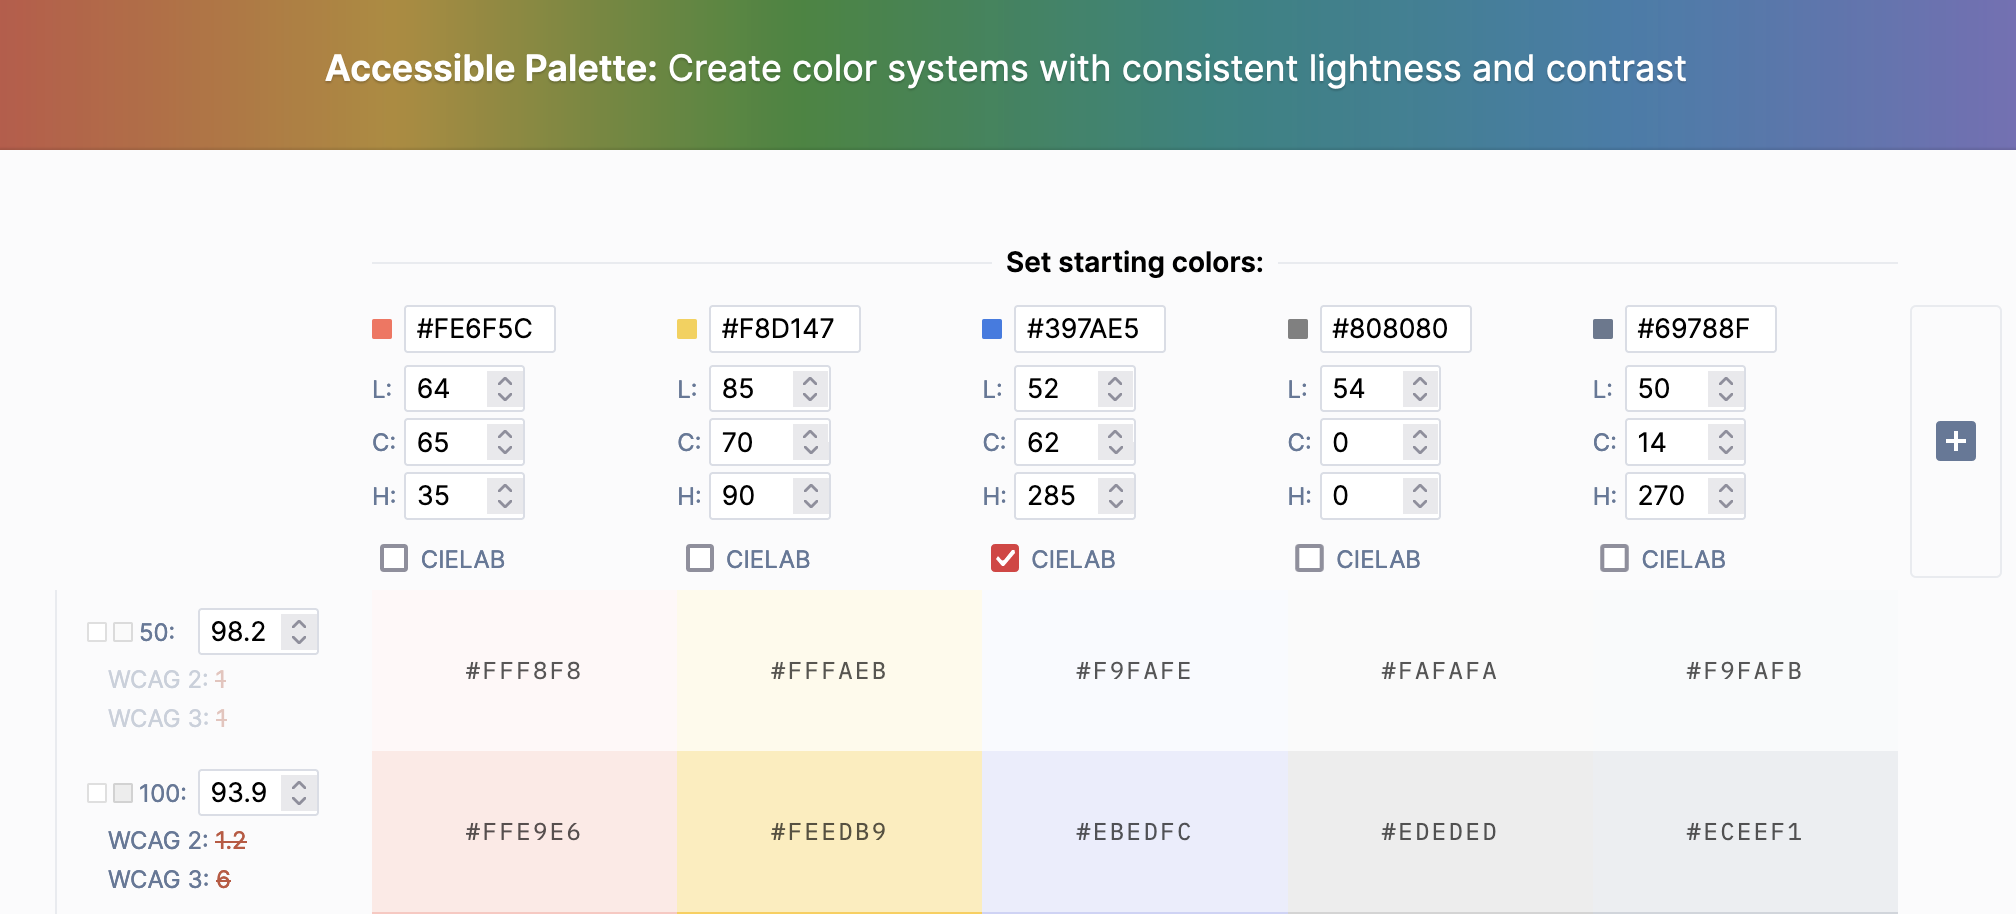 Accessible color palette showing many colors and controls.